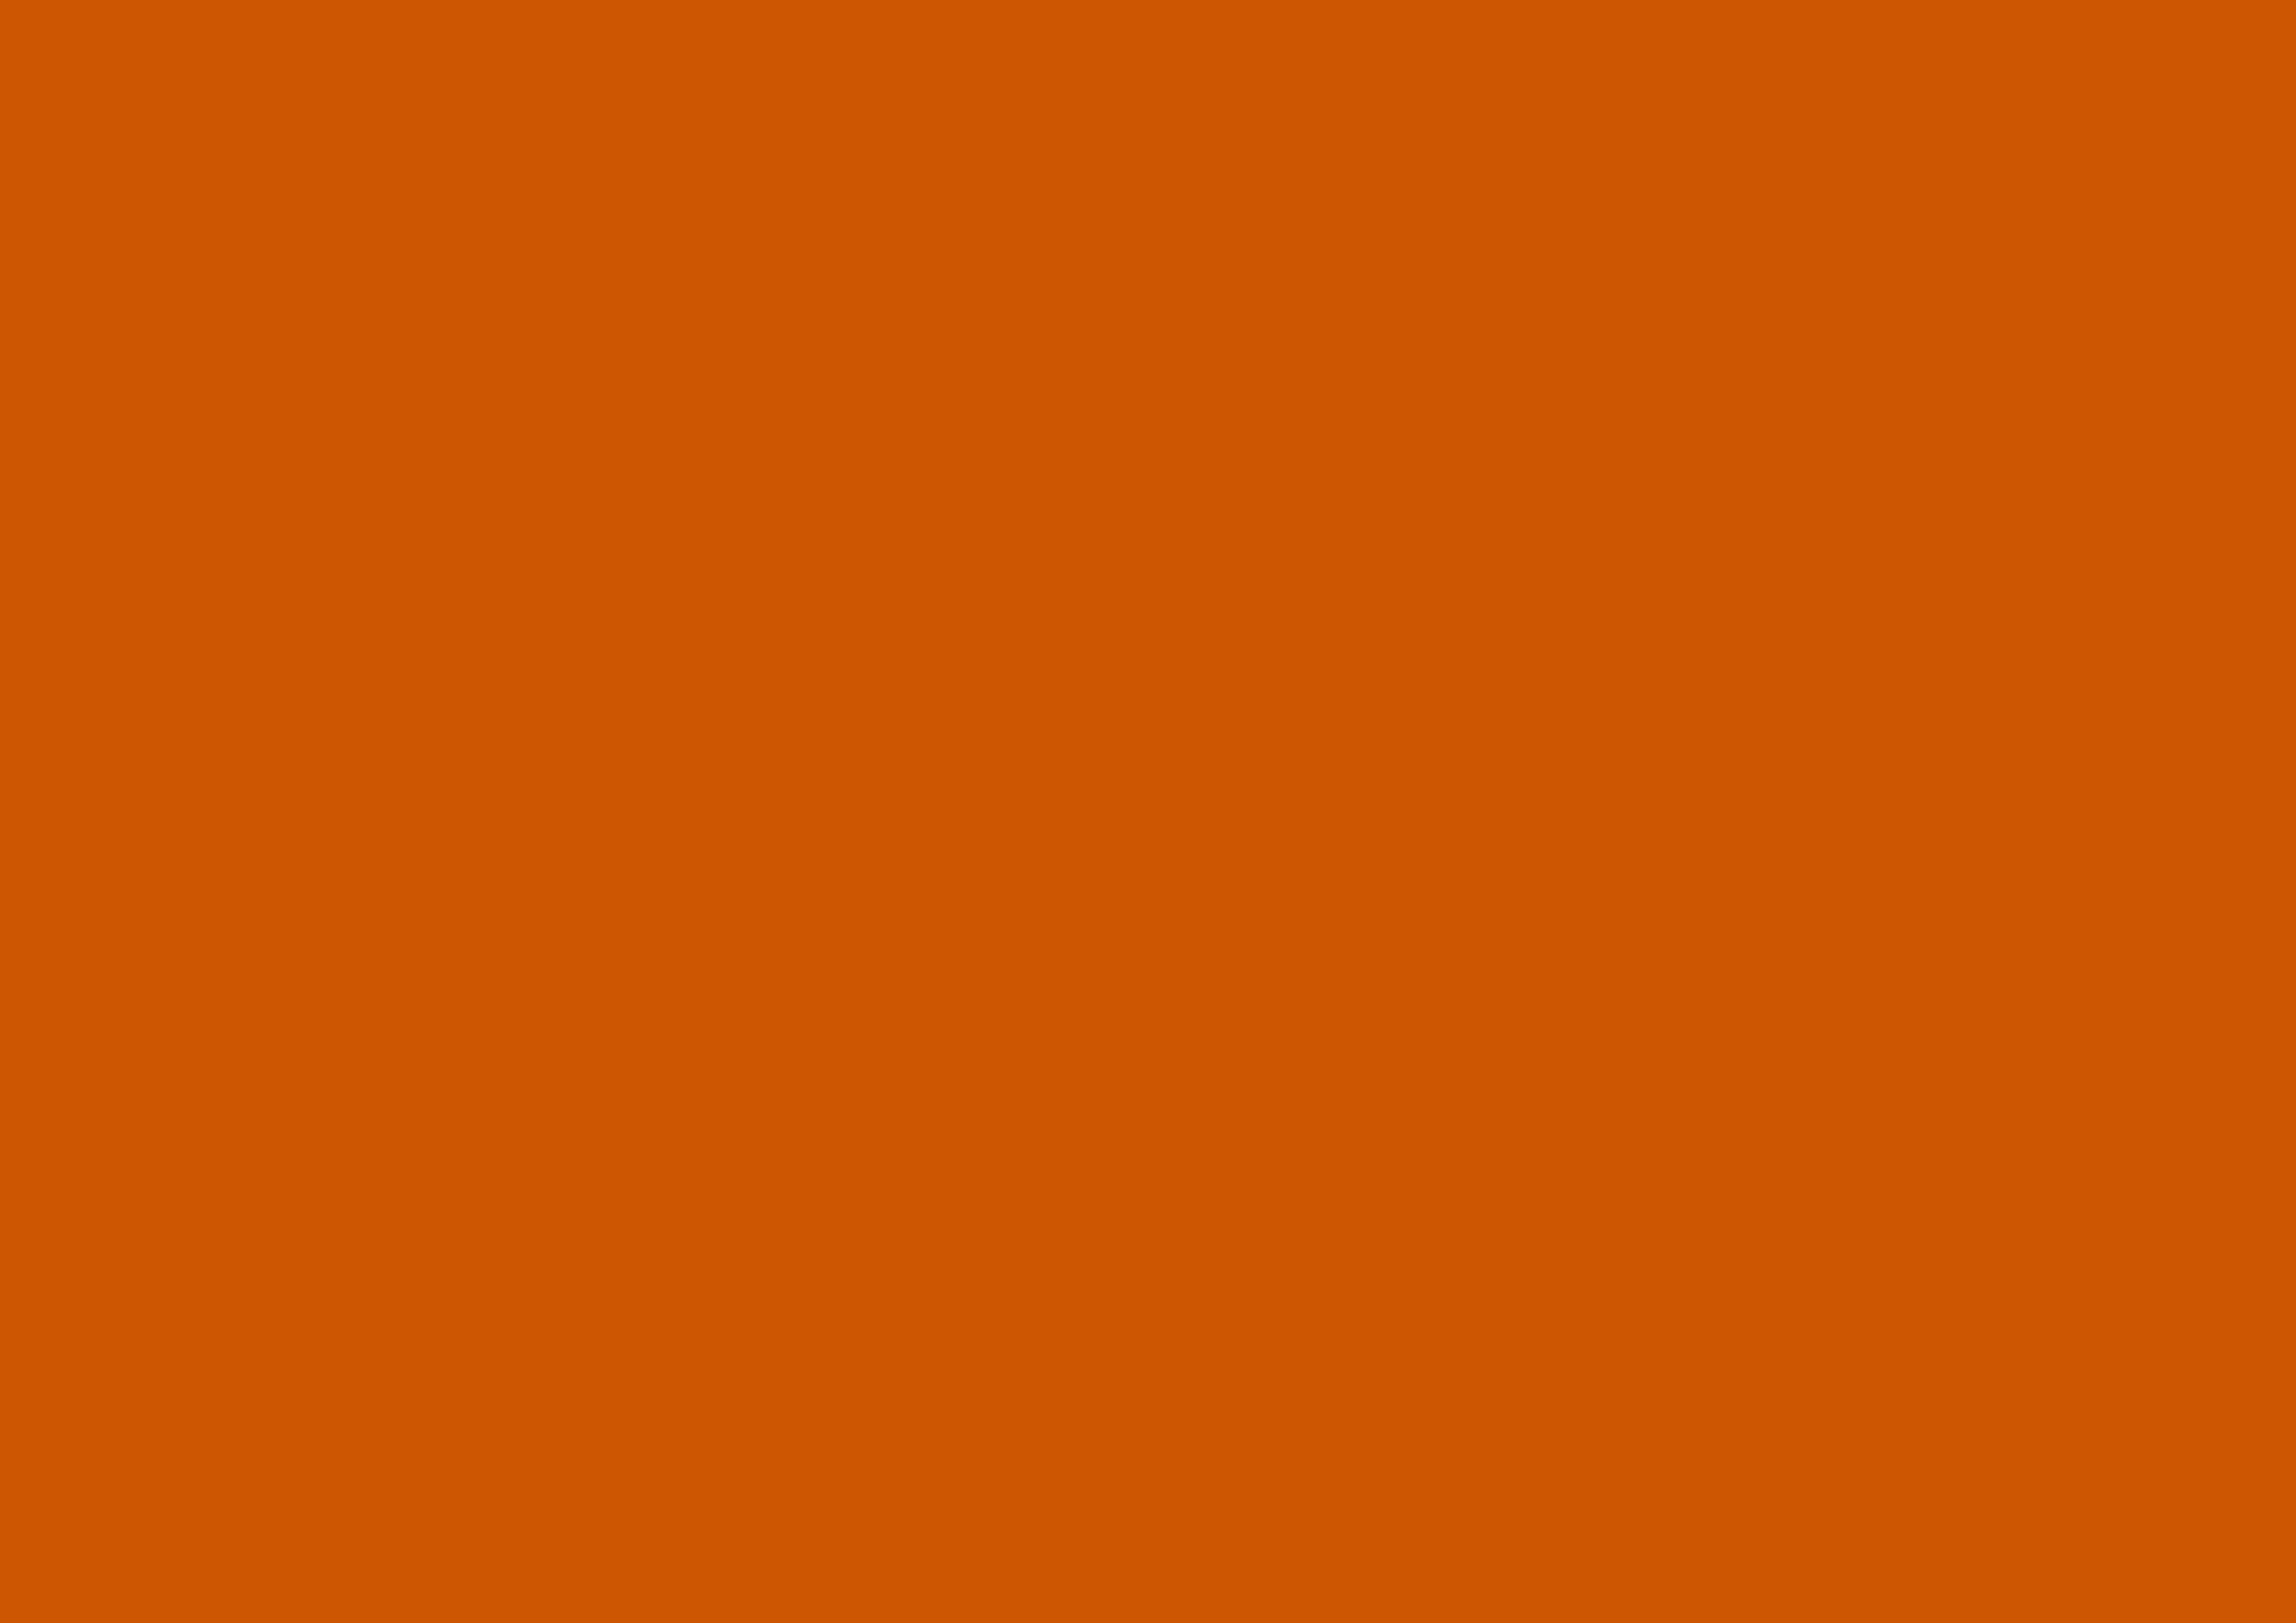 3508x2480 Tenne Tawny Solid Color Background